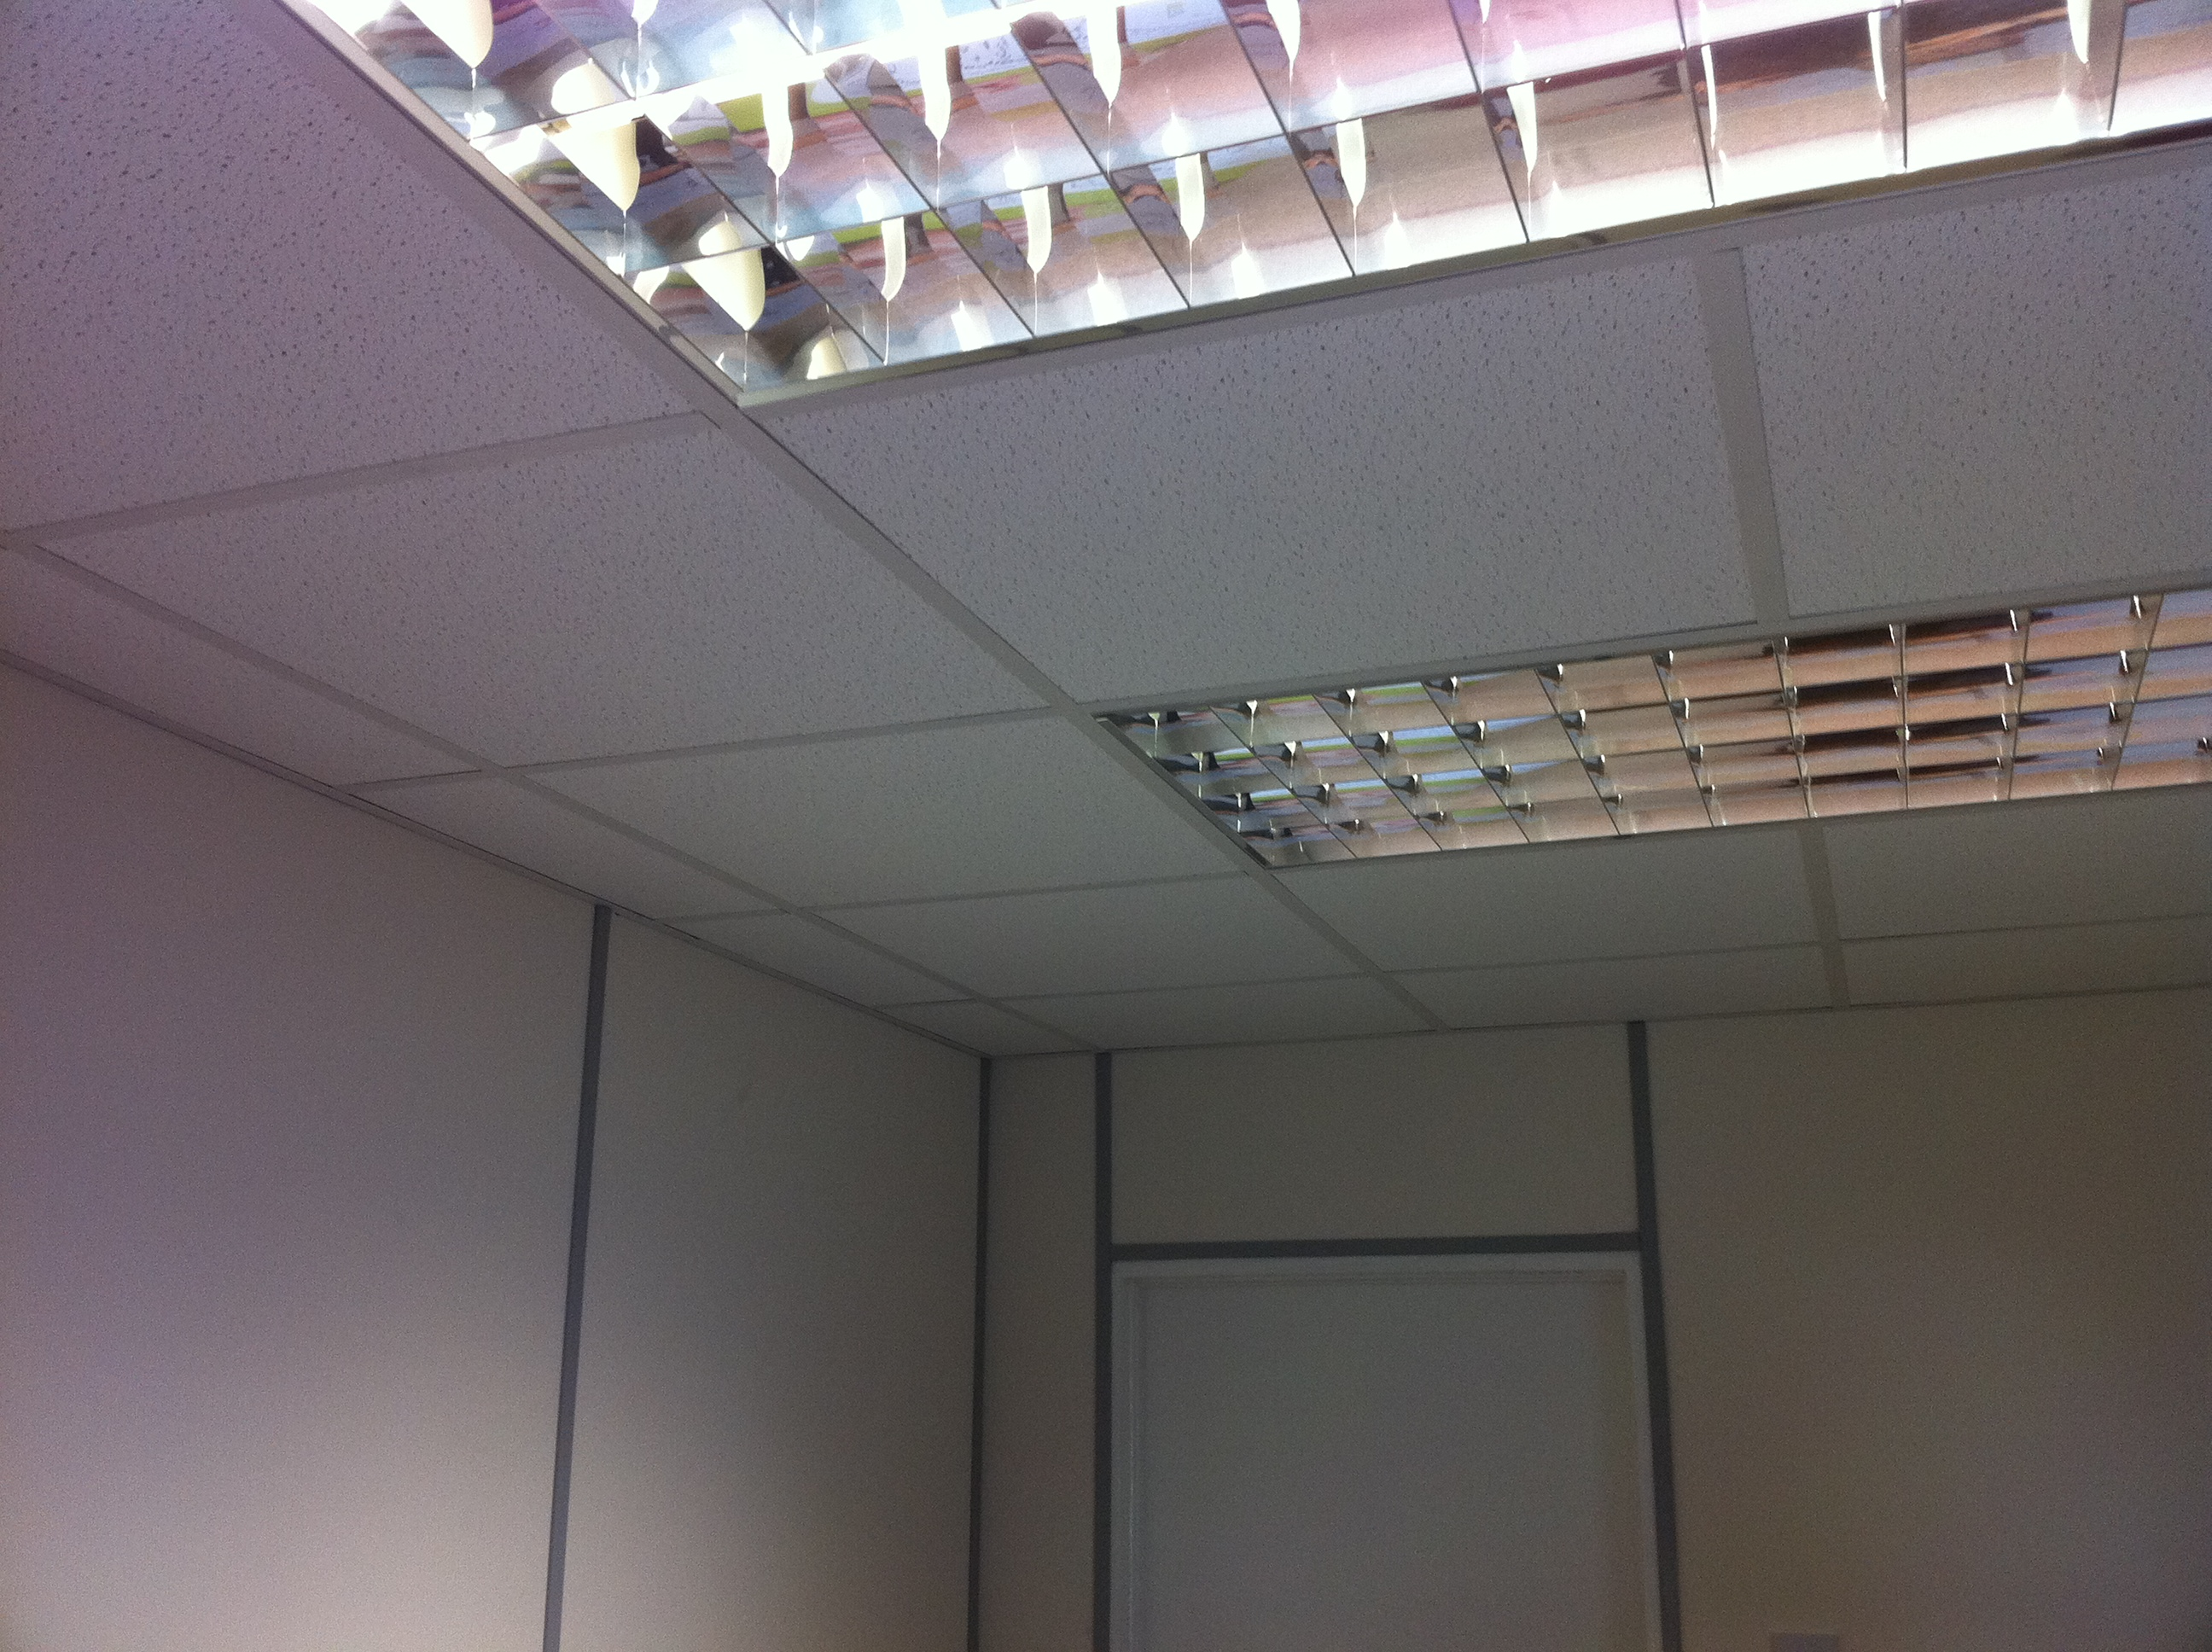 tegular solutions bright lights with ceiling medium suspended ceilings storage